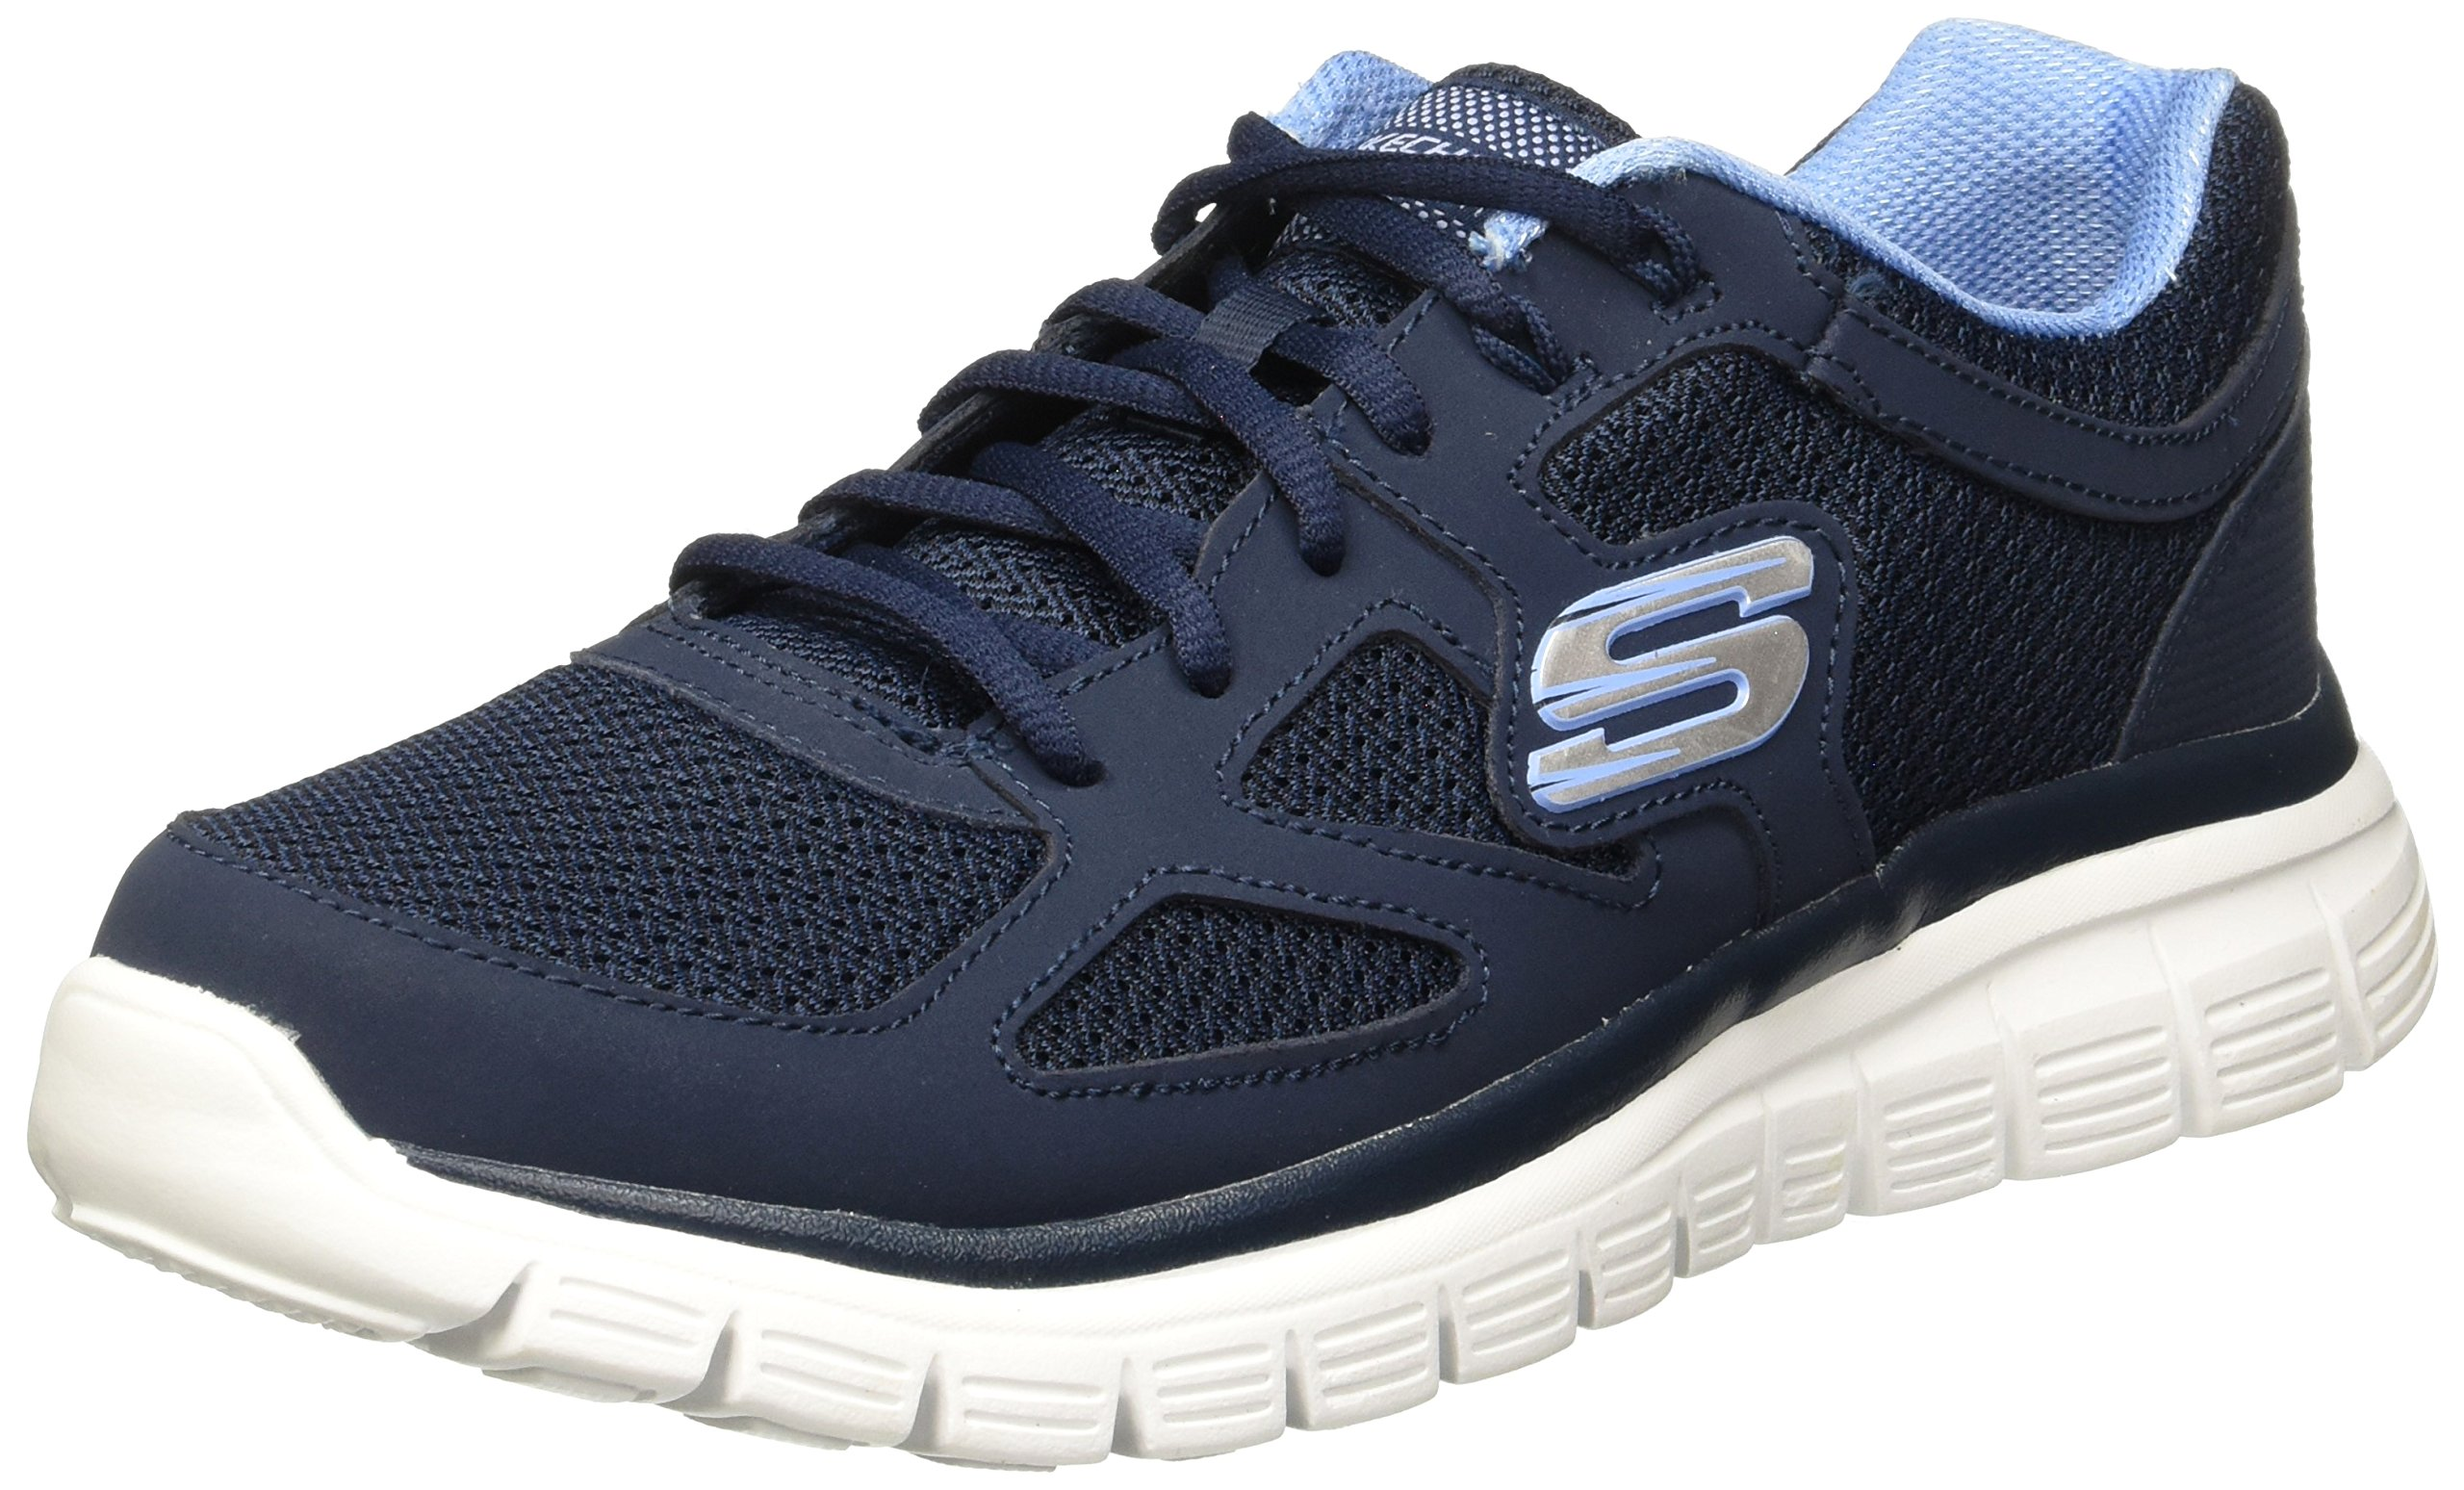 be44b4f1a Skechers New Mens Gents Black Burns Agoura Lace Ups Trainers - Assorted -  UK Sizes